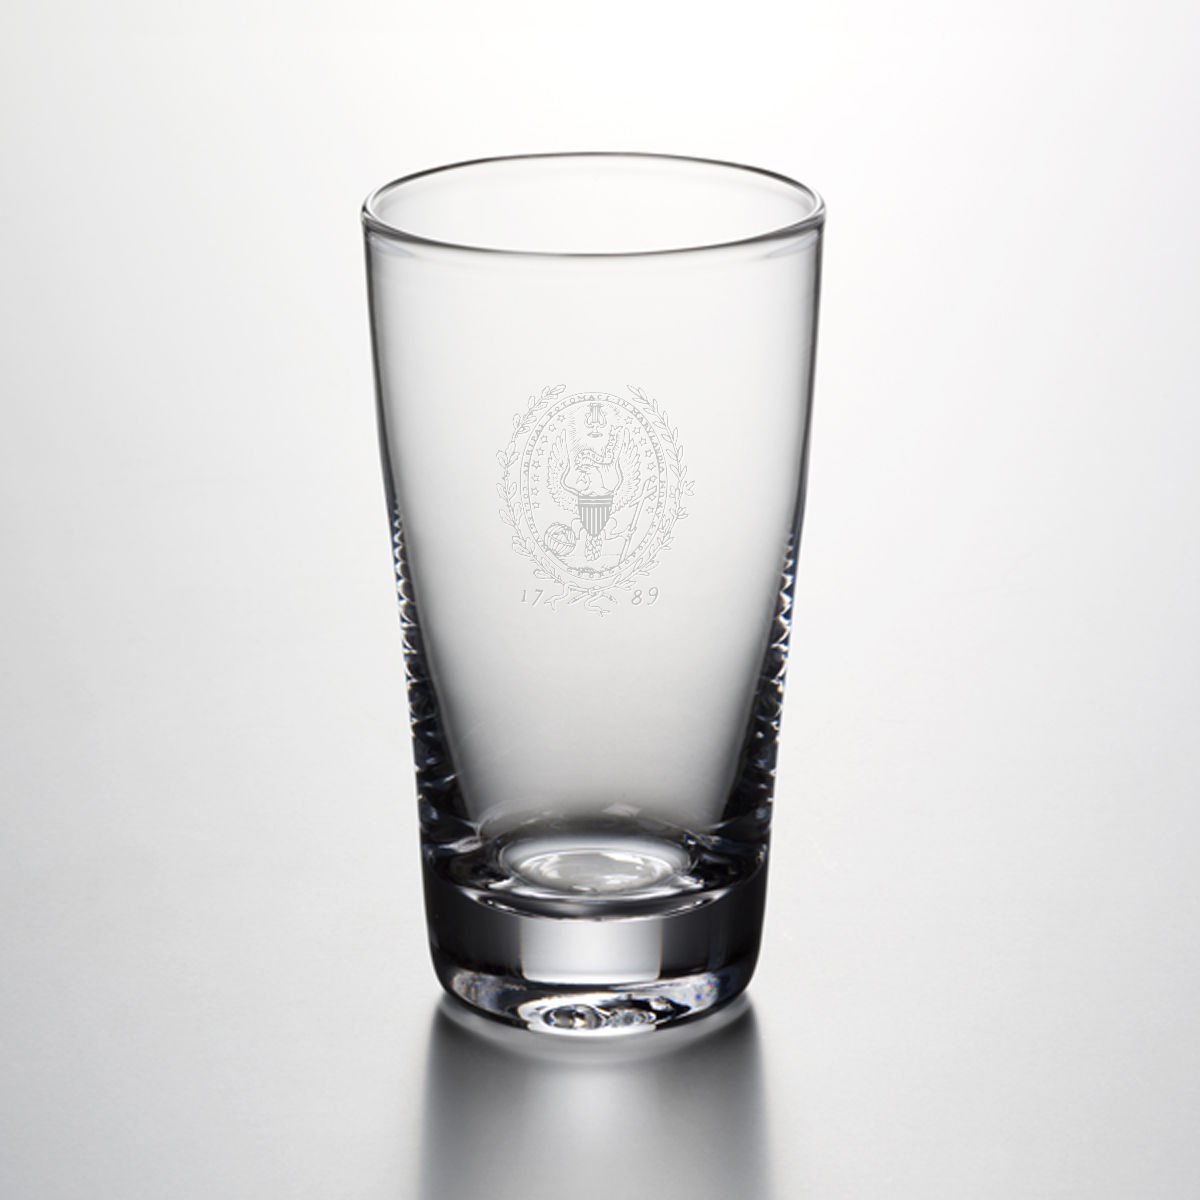 Georgetown Pint Glass by Simon Pearce